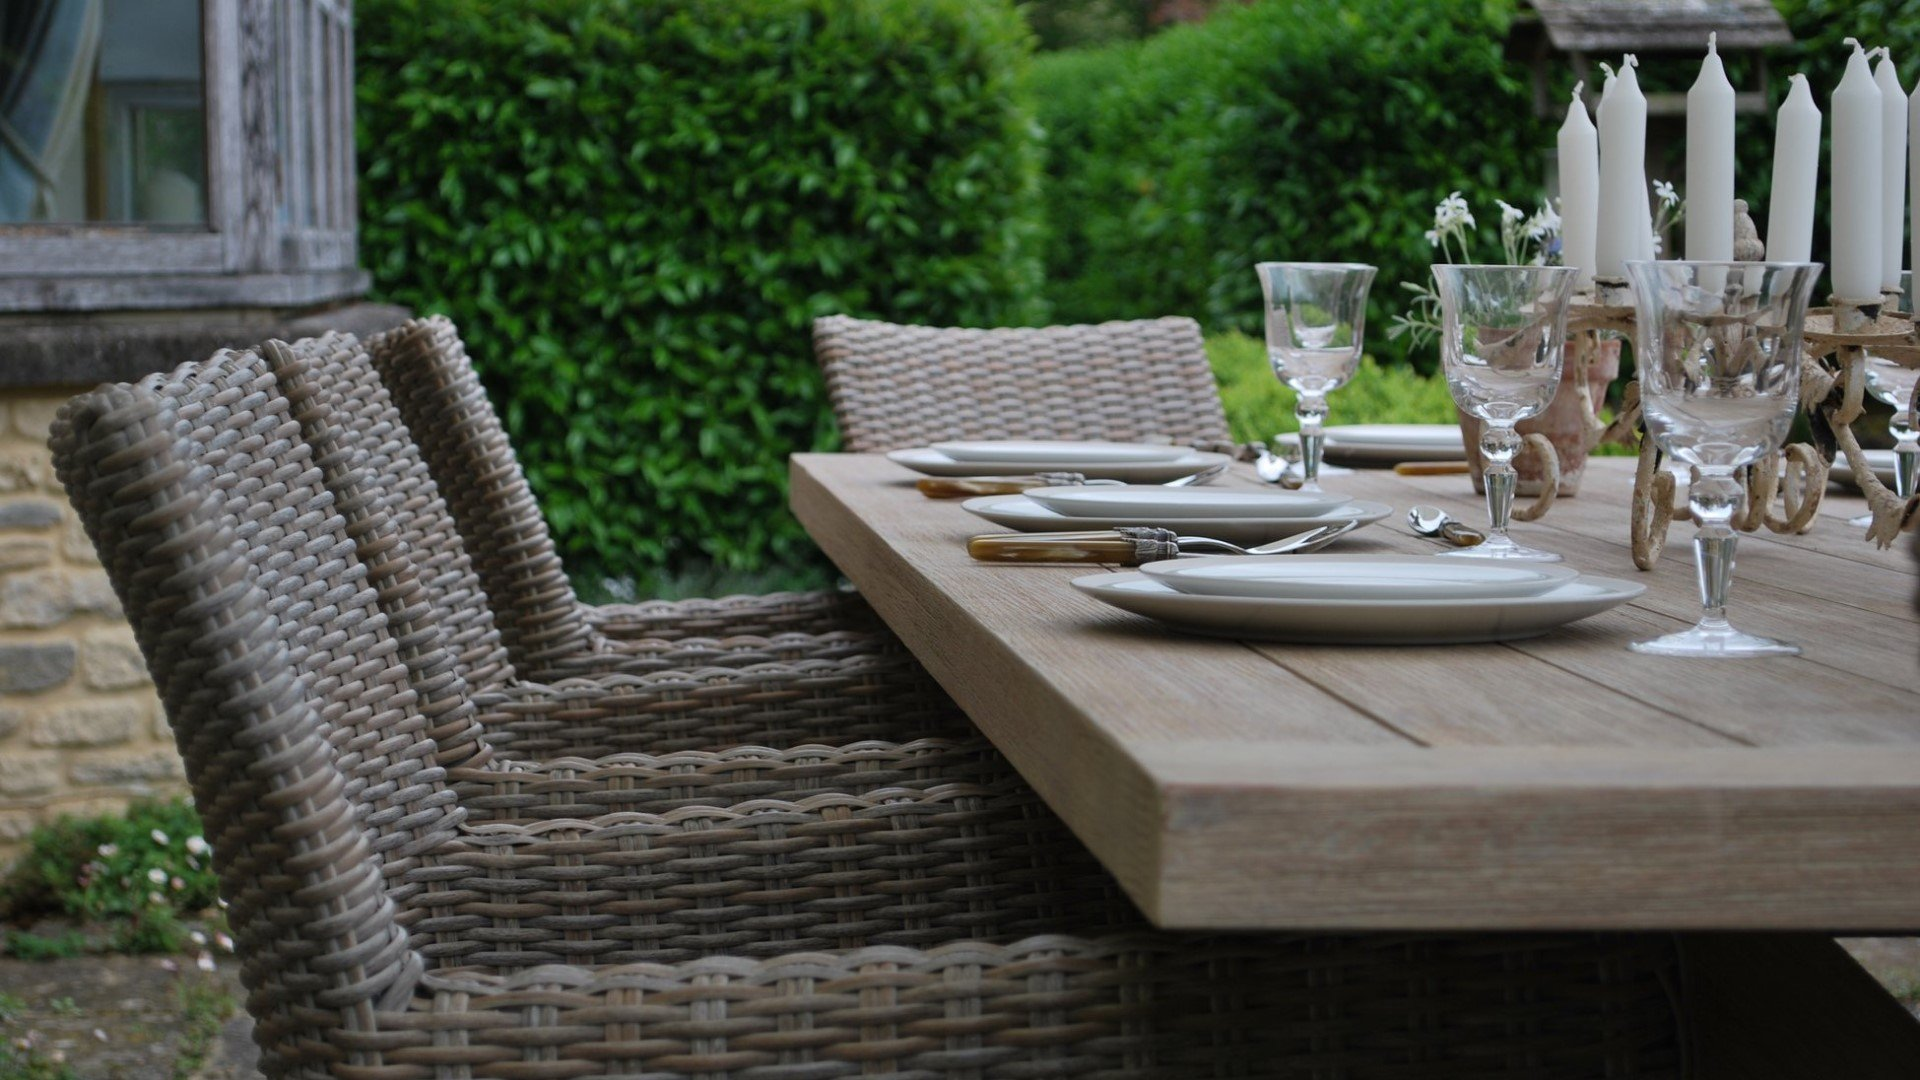 Garden Furniture from Oxfordshire-based Makers and Suppliers